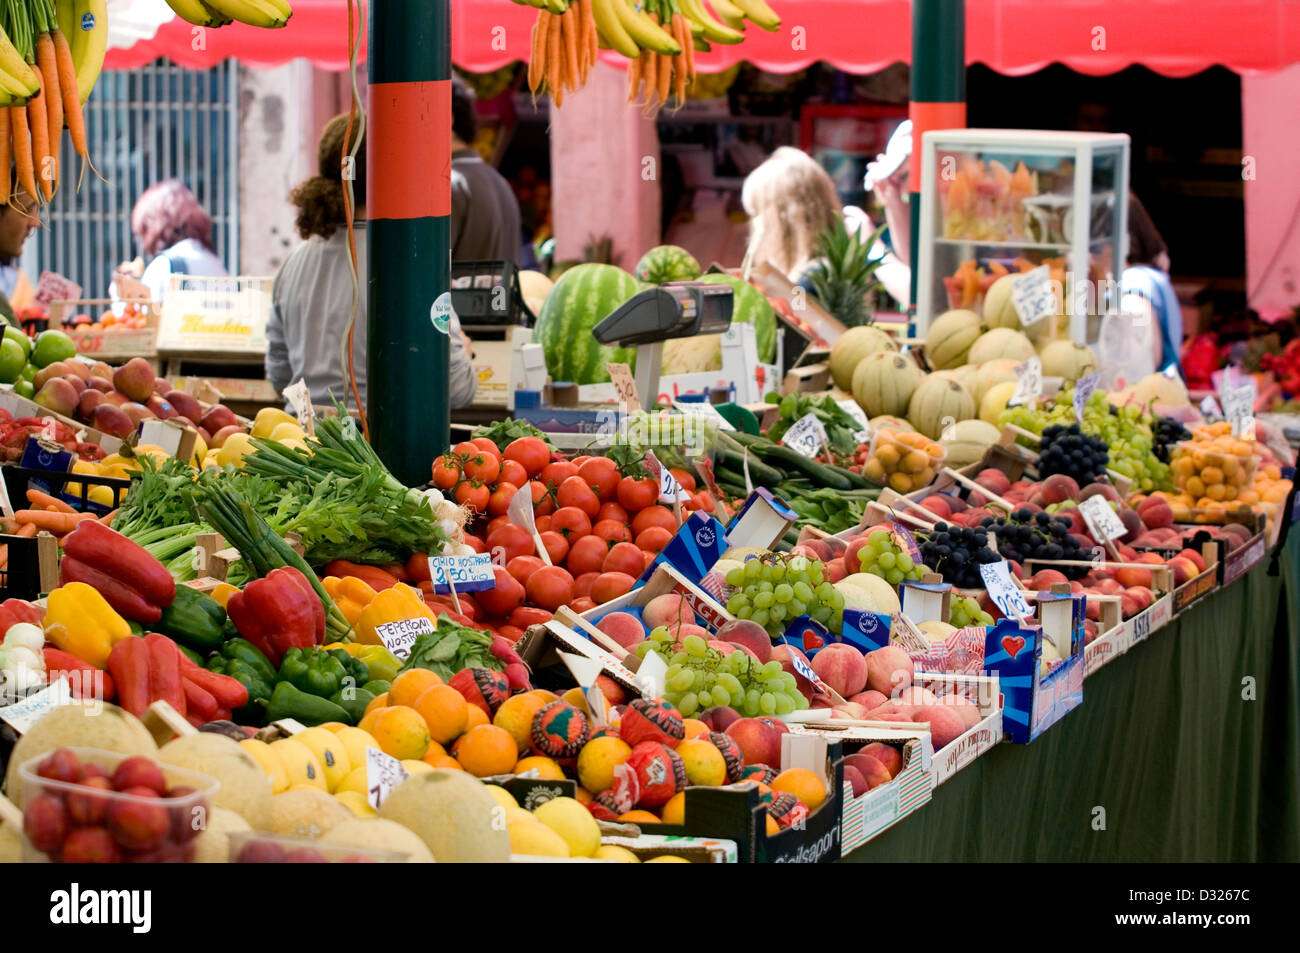 Fruit, vegetables, and customers at the Mercato di Rialto, San Polo, Venice, Italy. Stock Photo